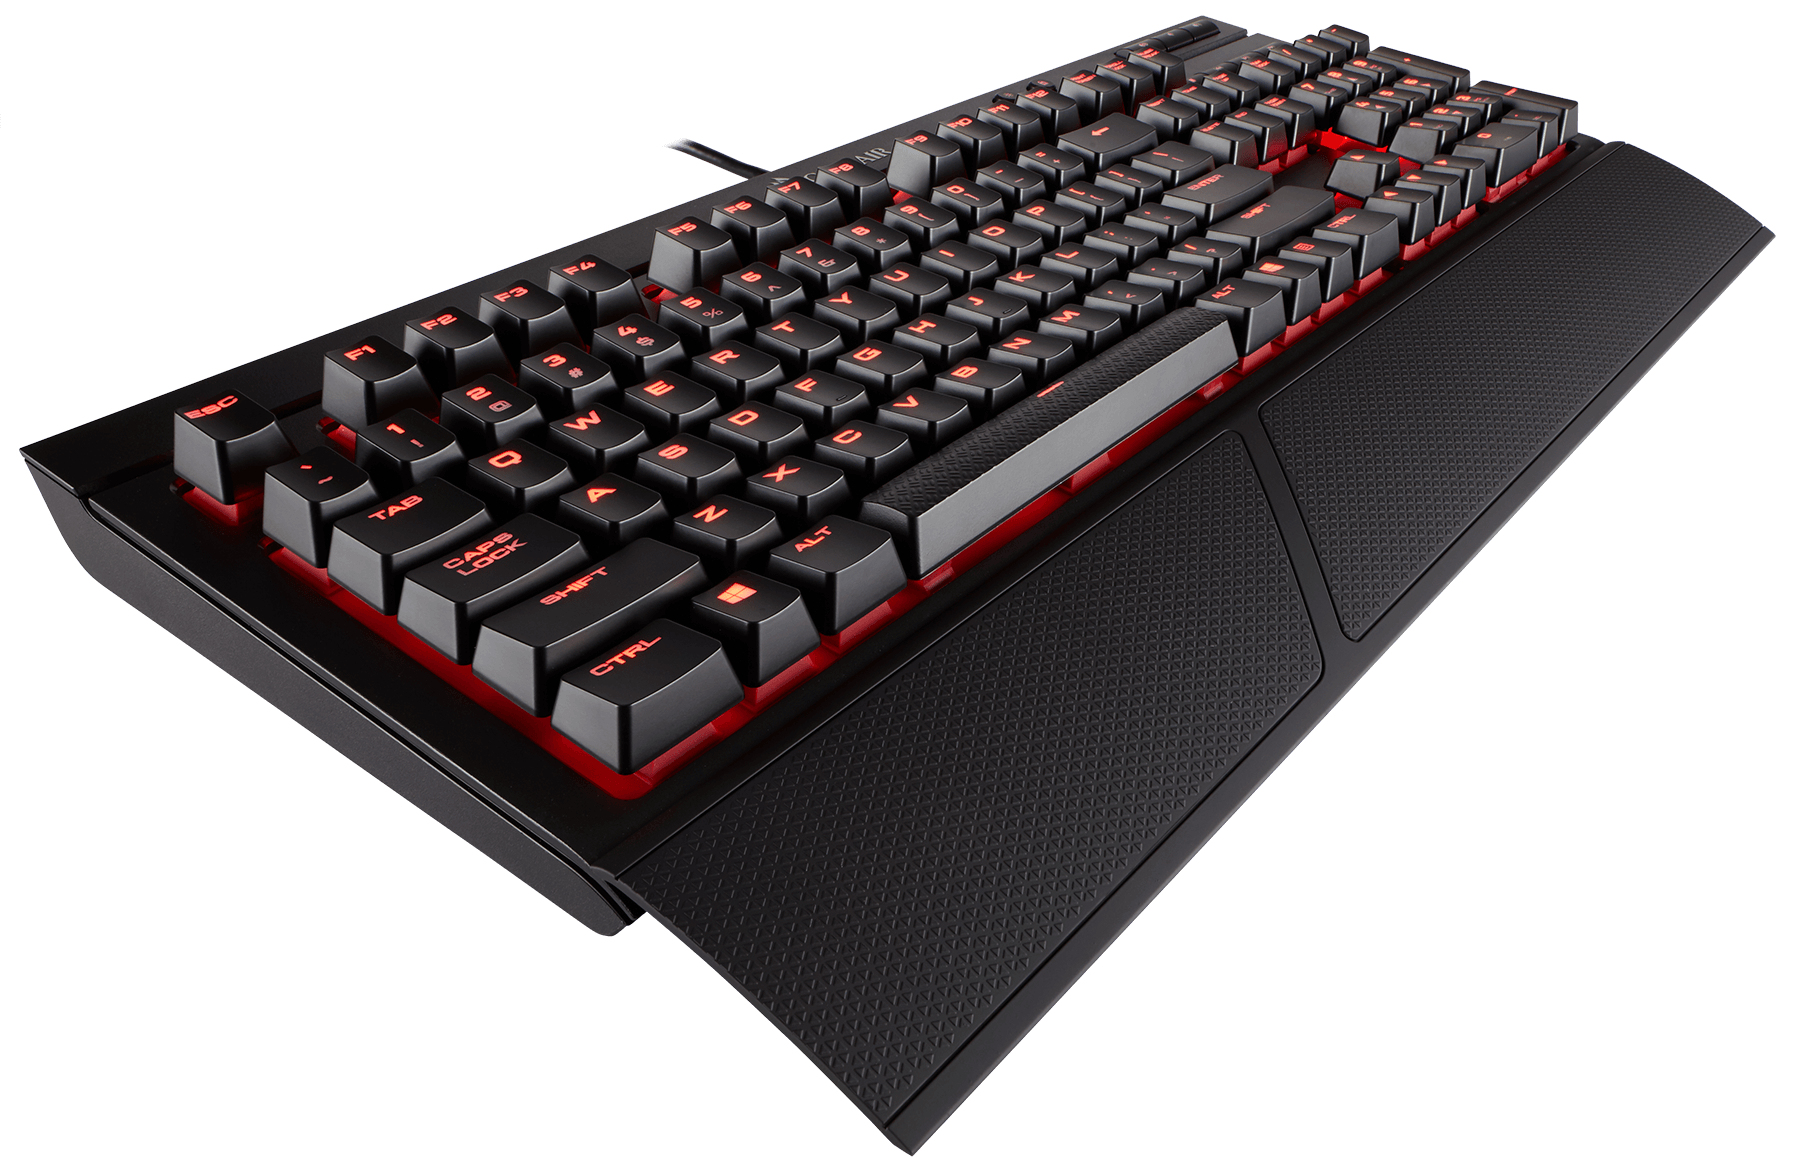 Corsair K68 Red LED Gaming Keyboard